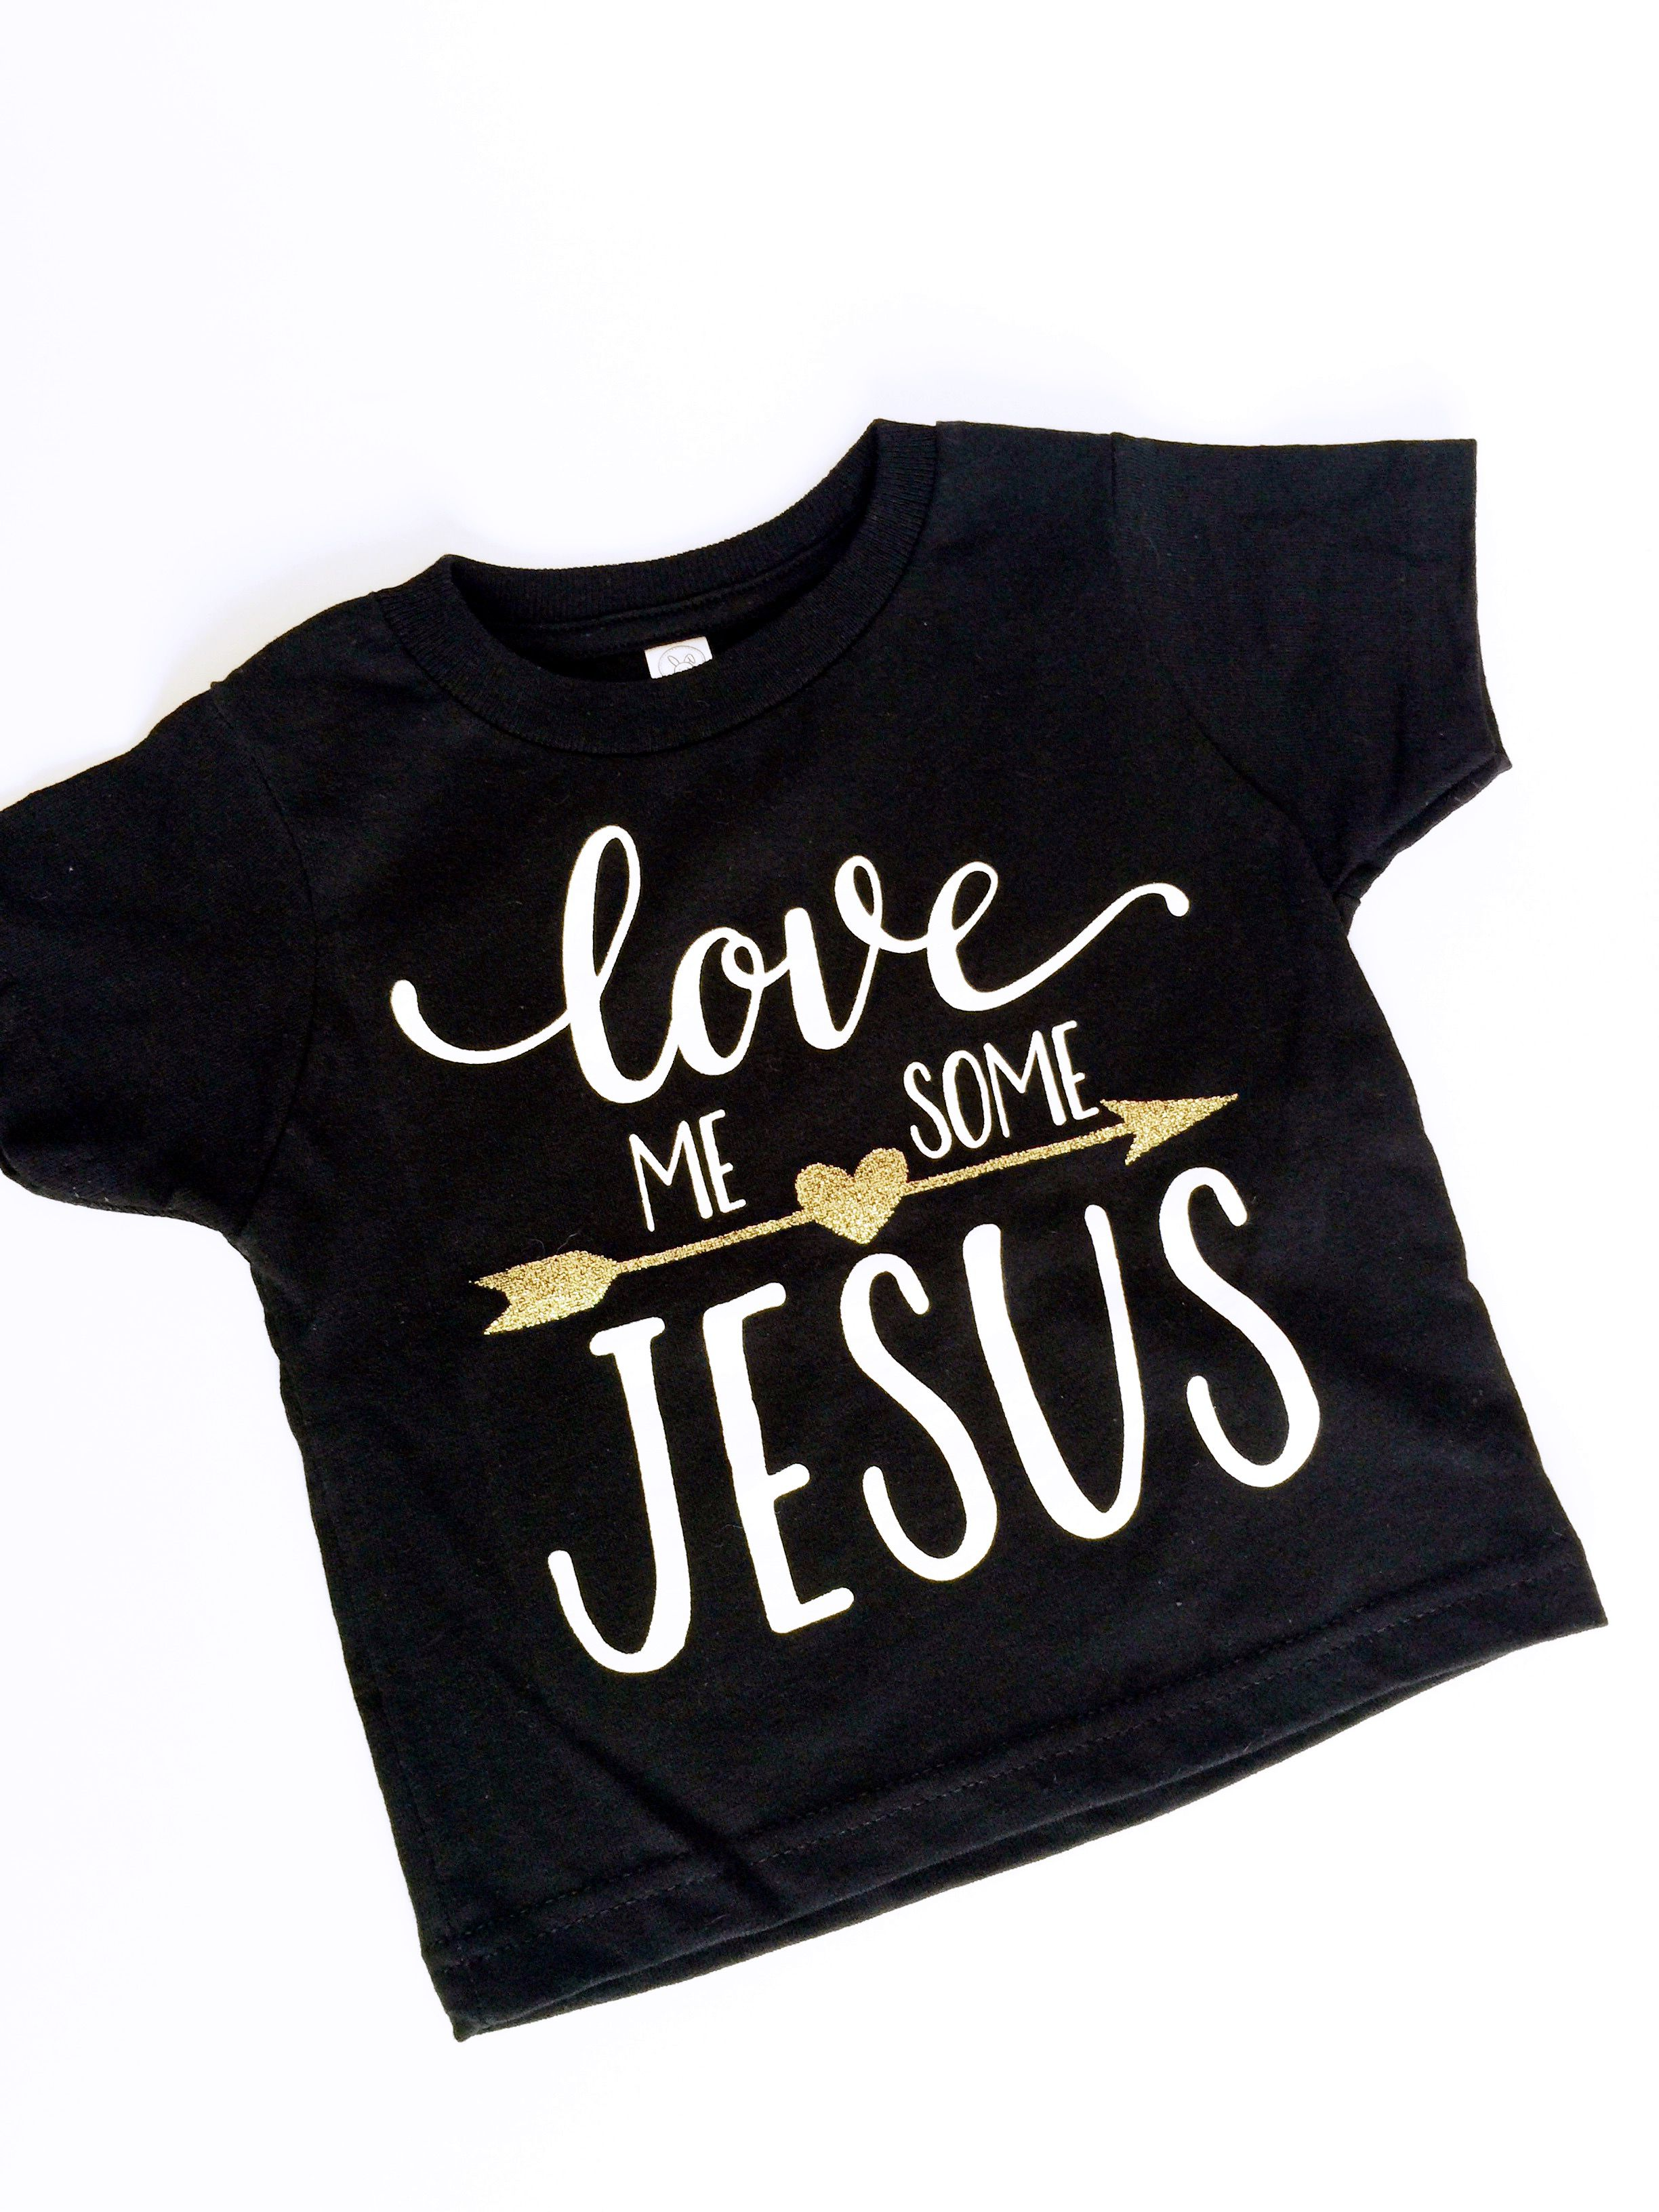 f42ce899a Who doesn't love me some Jesus?! Wear your faith on a graphic tee! This  toddler Christian apparel shirt is just a cute way to show your faith.